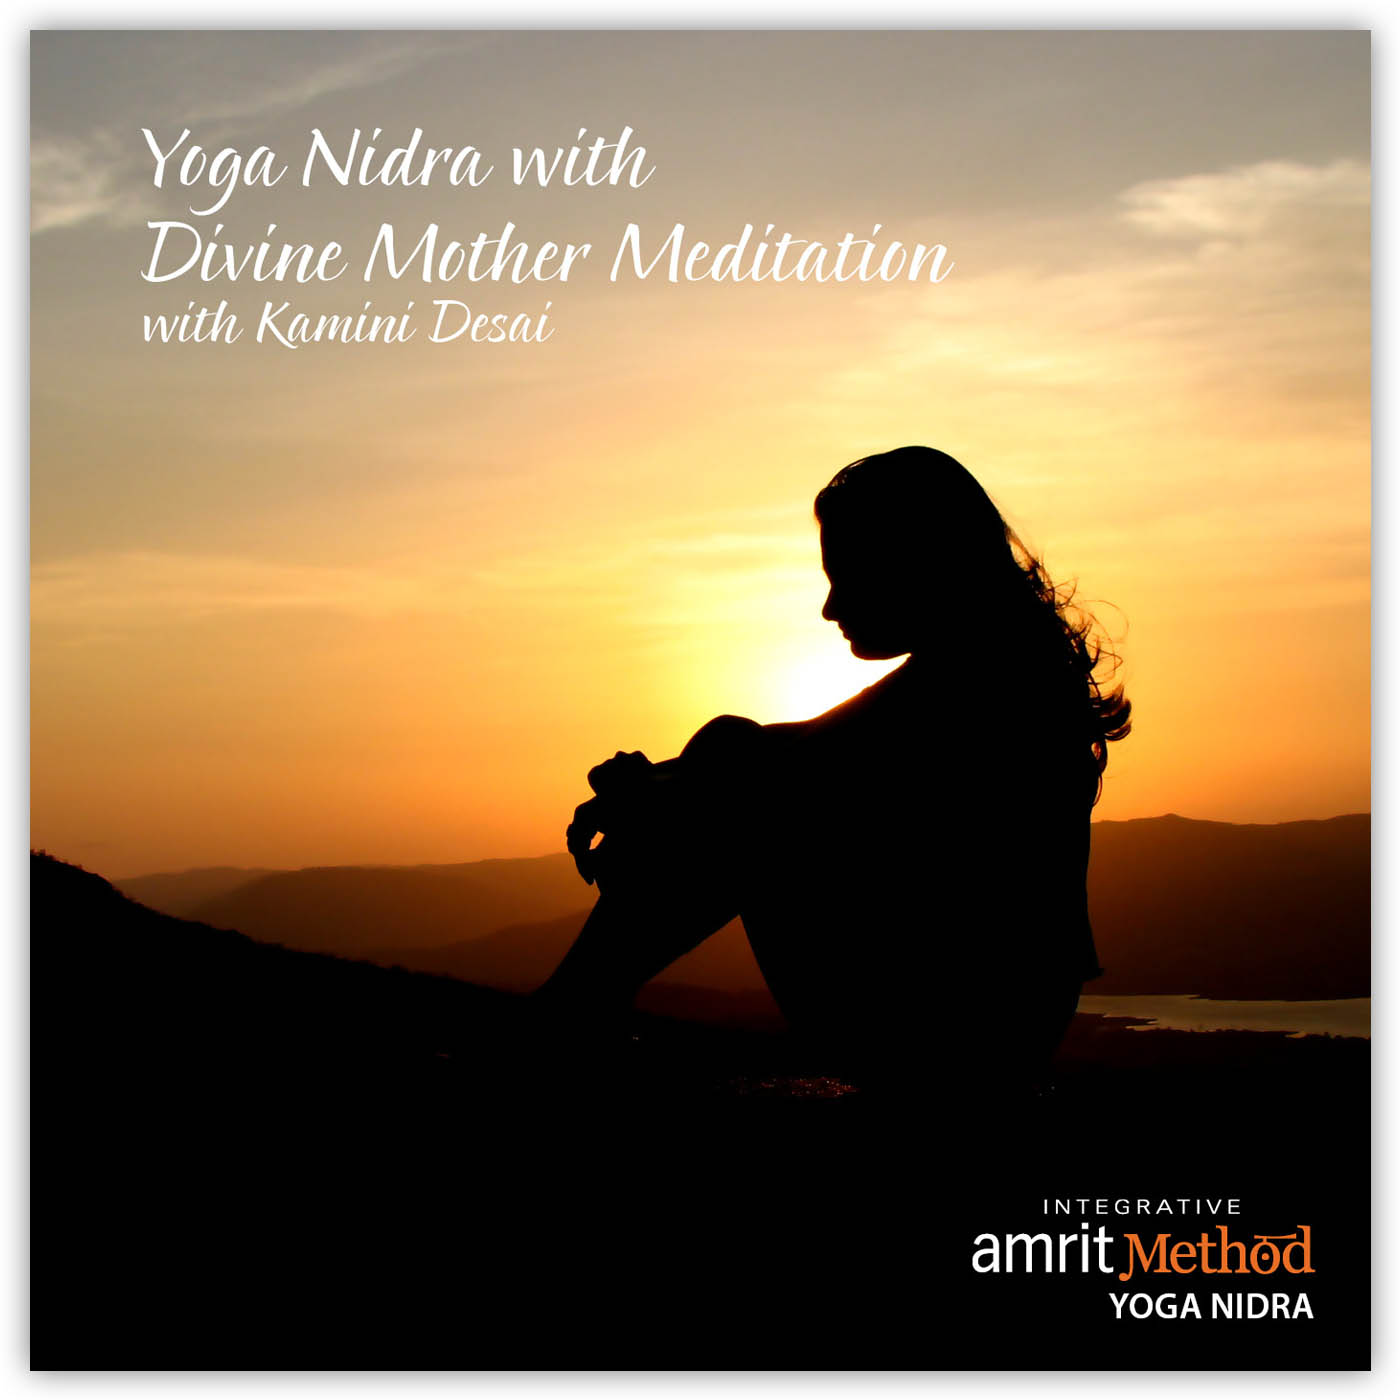 Yoga Nidra with Divine Mother Meditation with Kamini Desai PhD